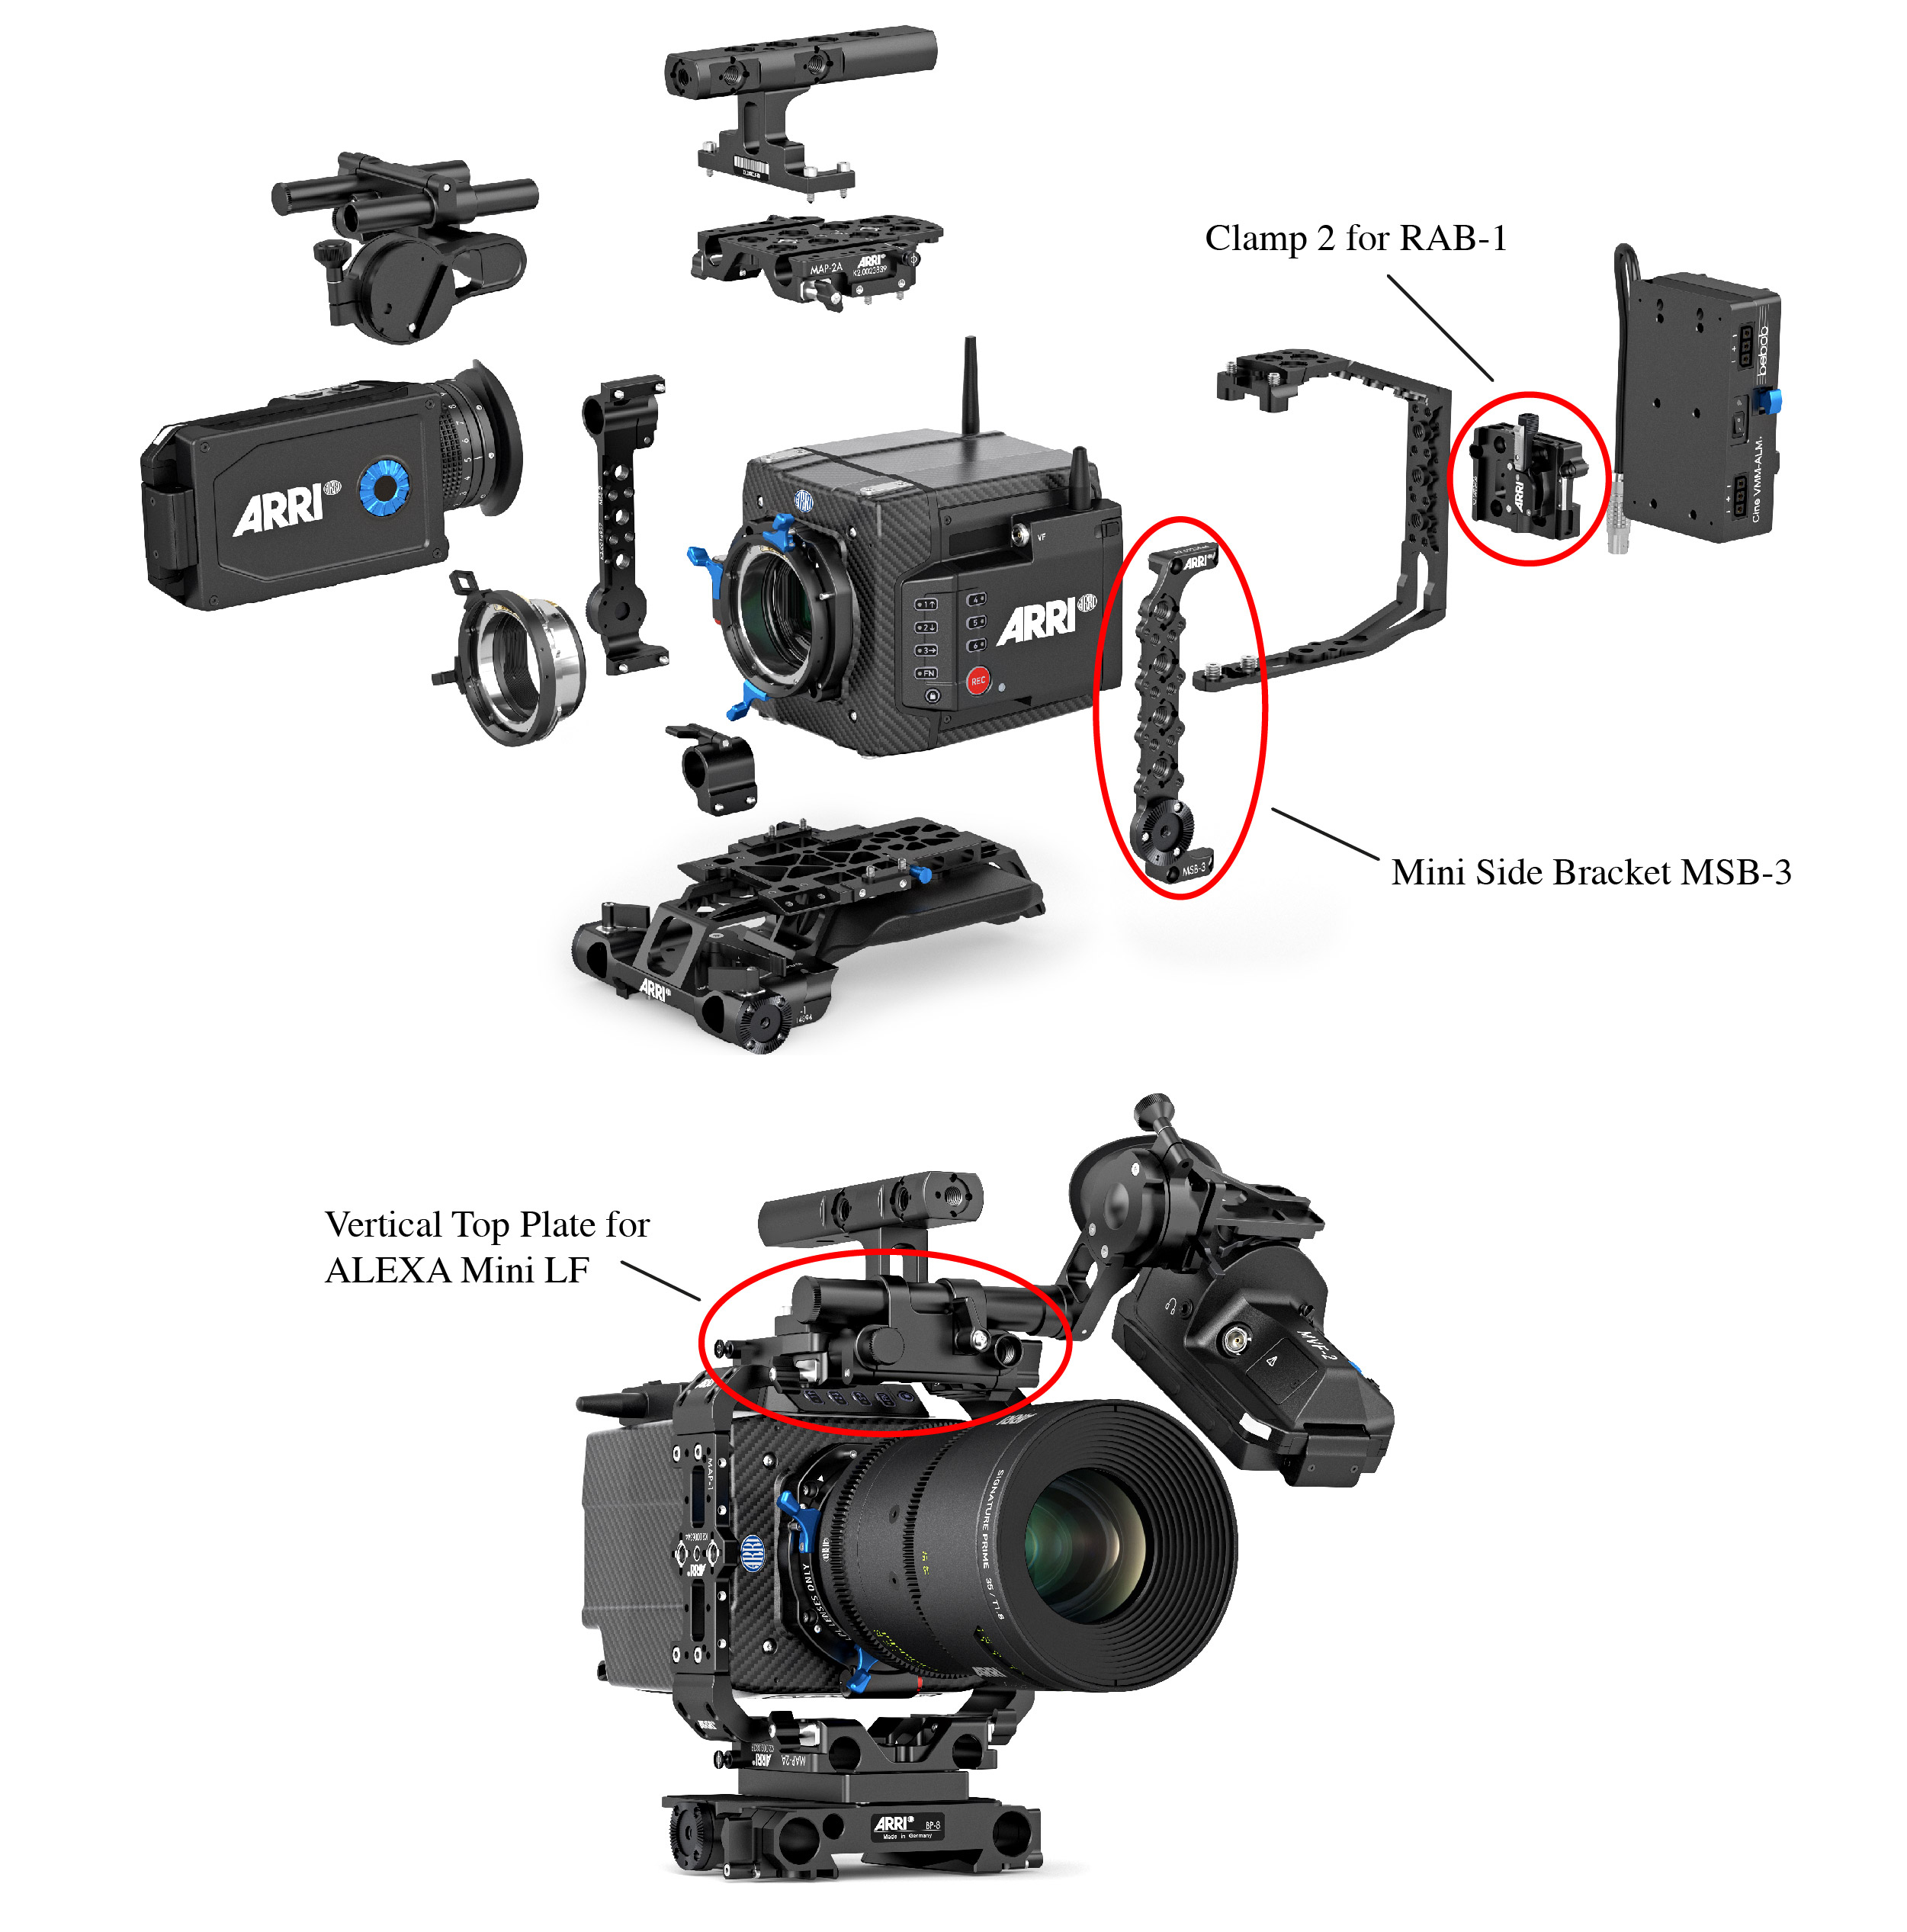 camera_faq_alexa_mini_lf_new_mechanical_accessories